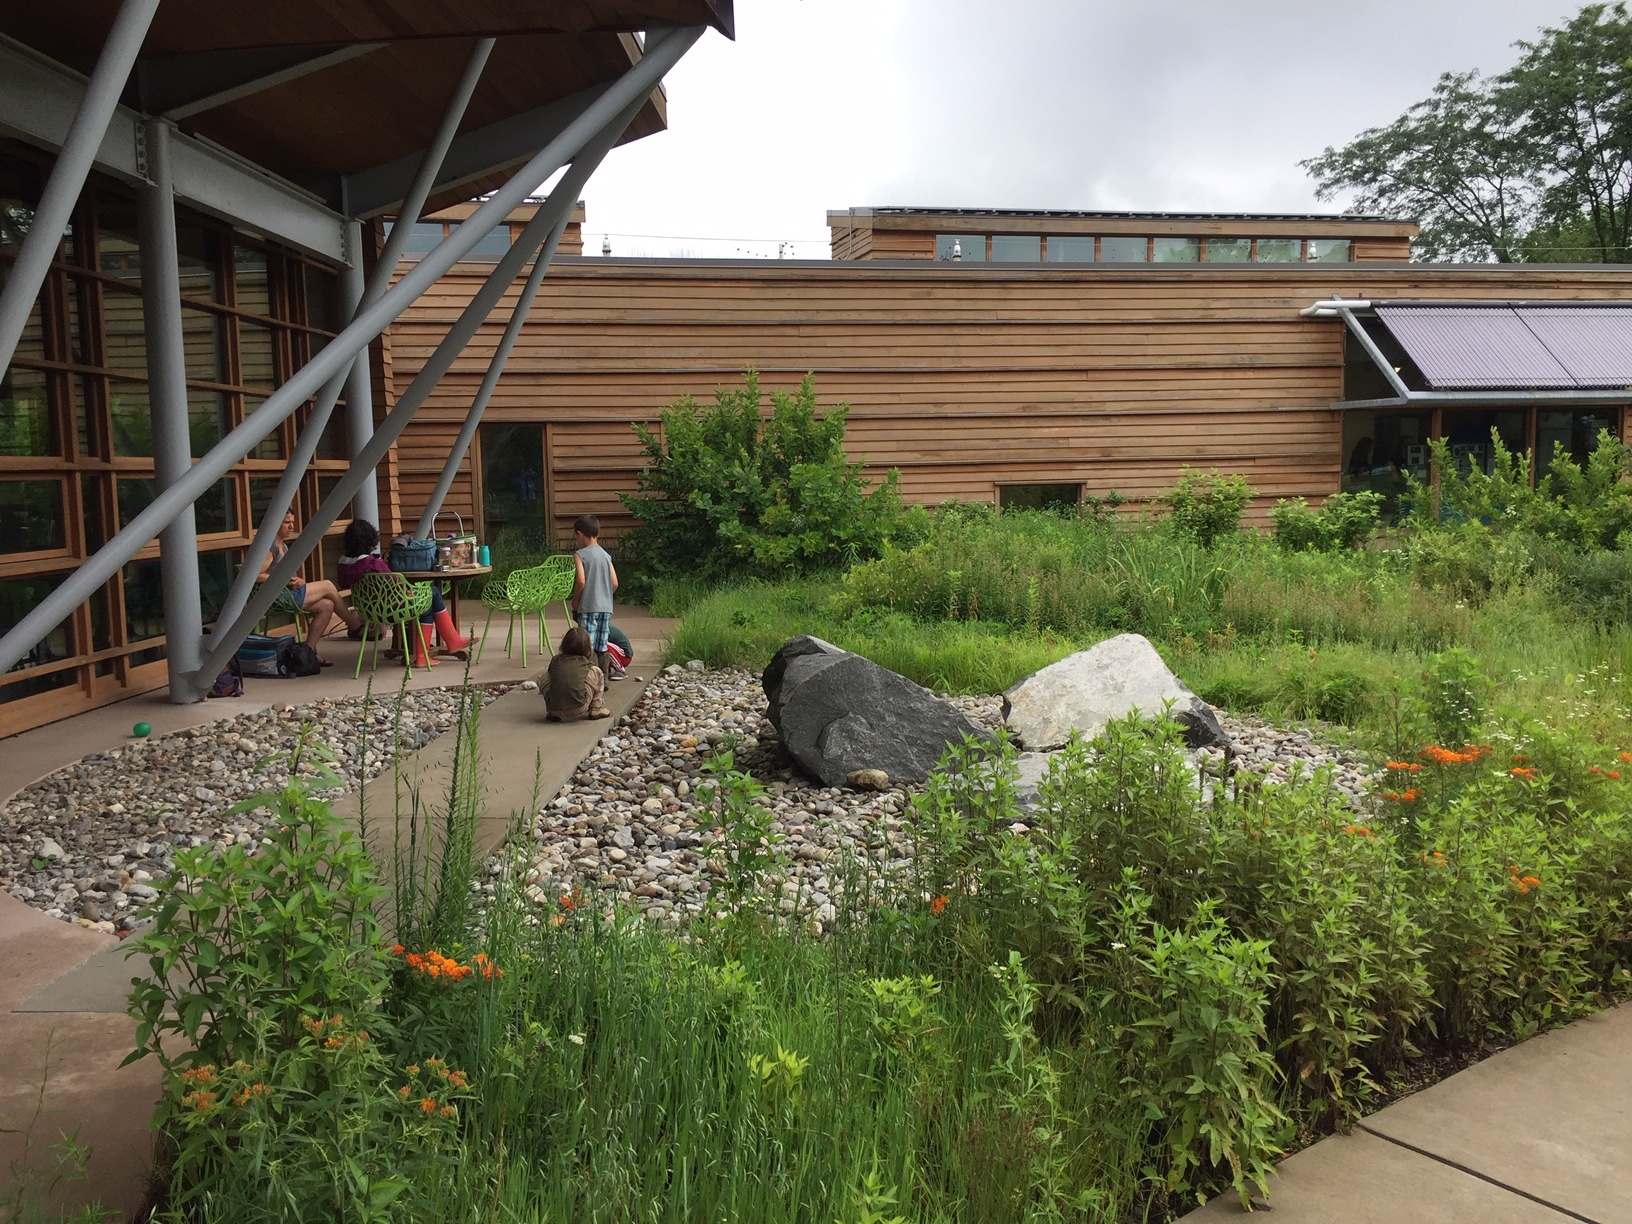 The Watershed Center, host of the stormwater symposium, is an example of the best practices it preaches.